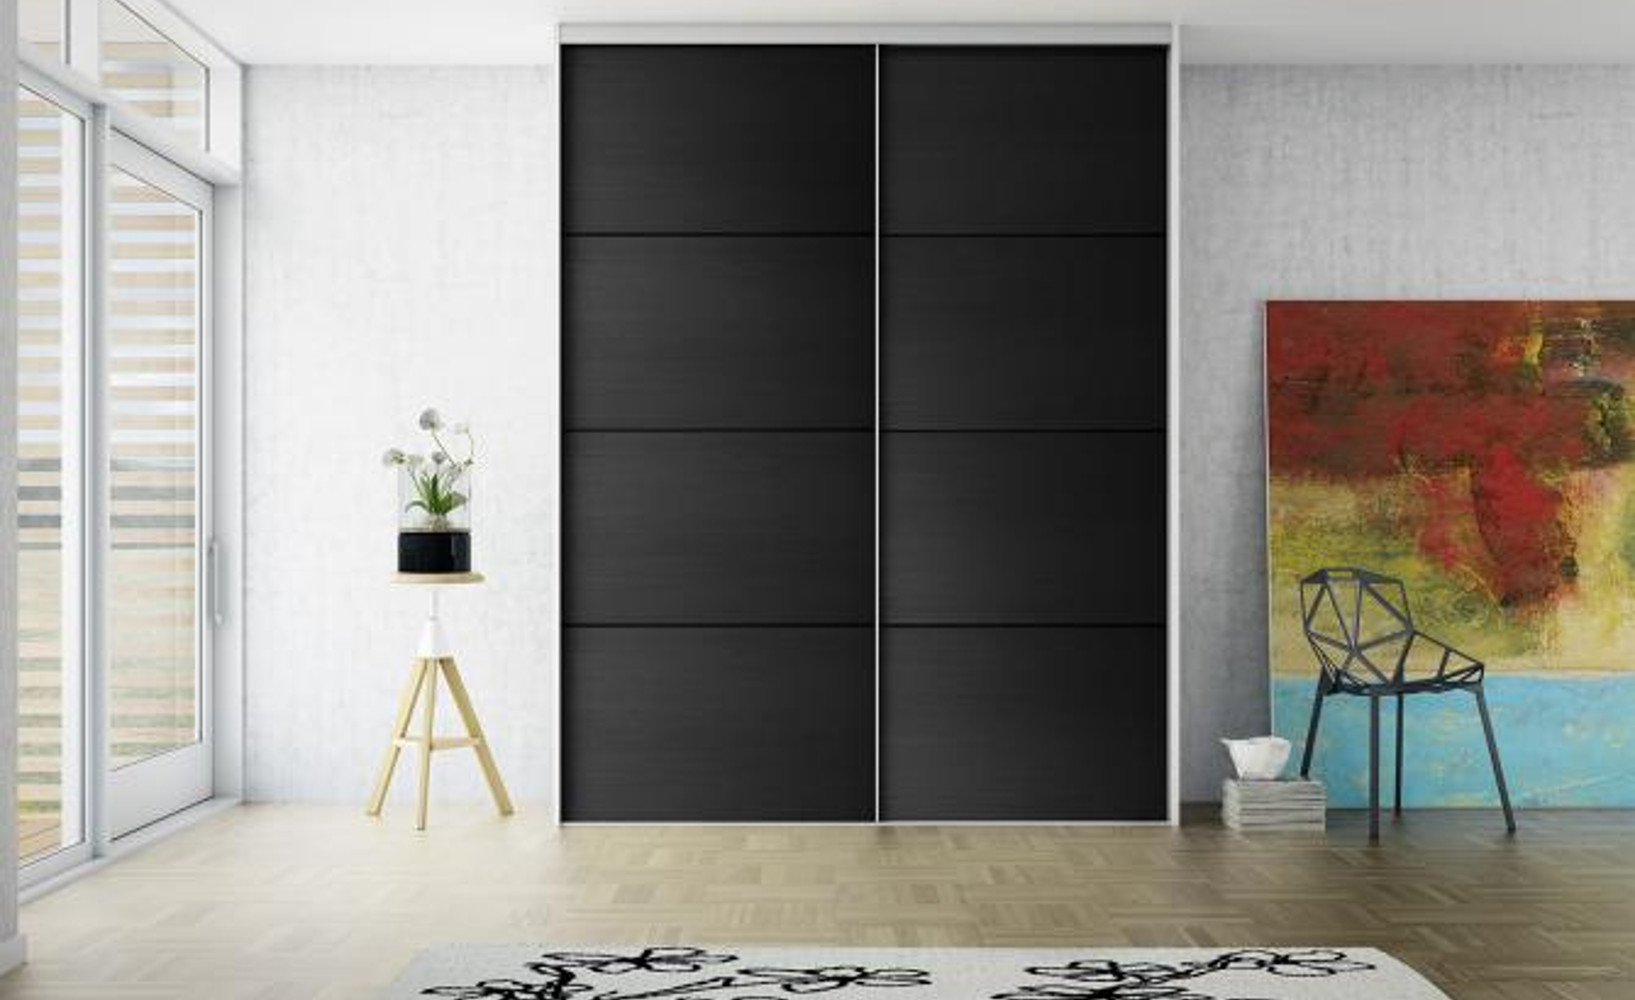 die sch nsten ideen beispiele und inspirierende tapete. Black Bedroom Furniture Sets. Home Design Ideas